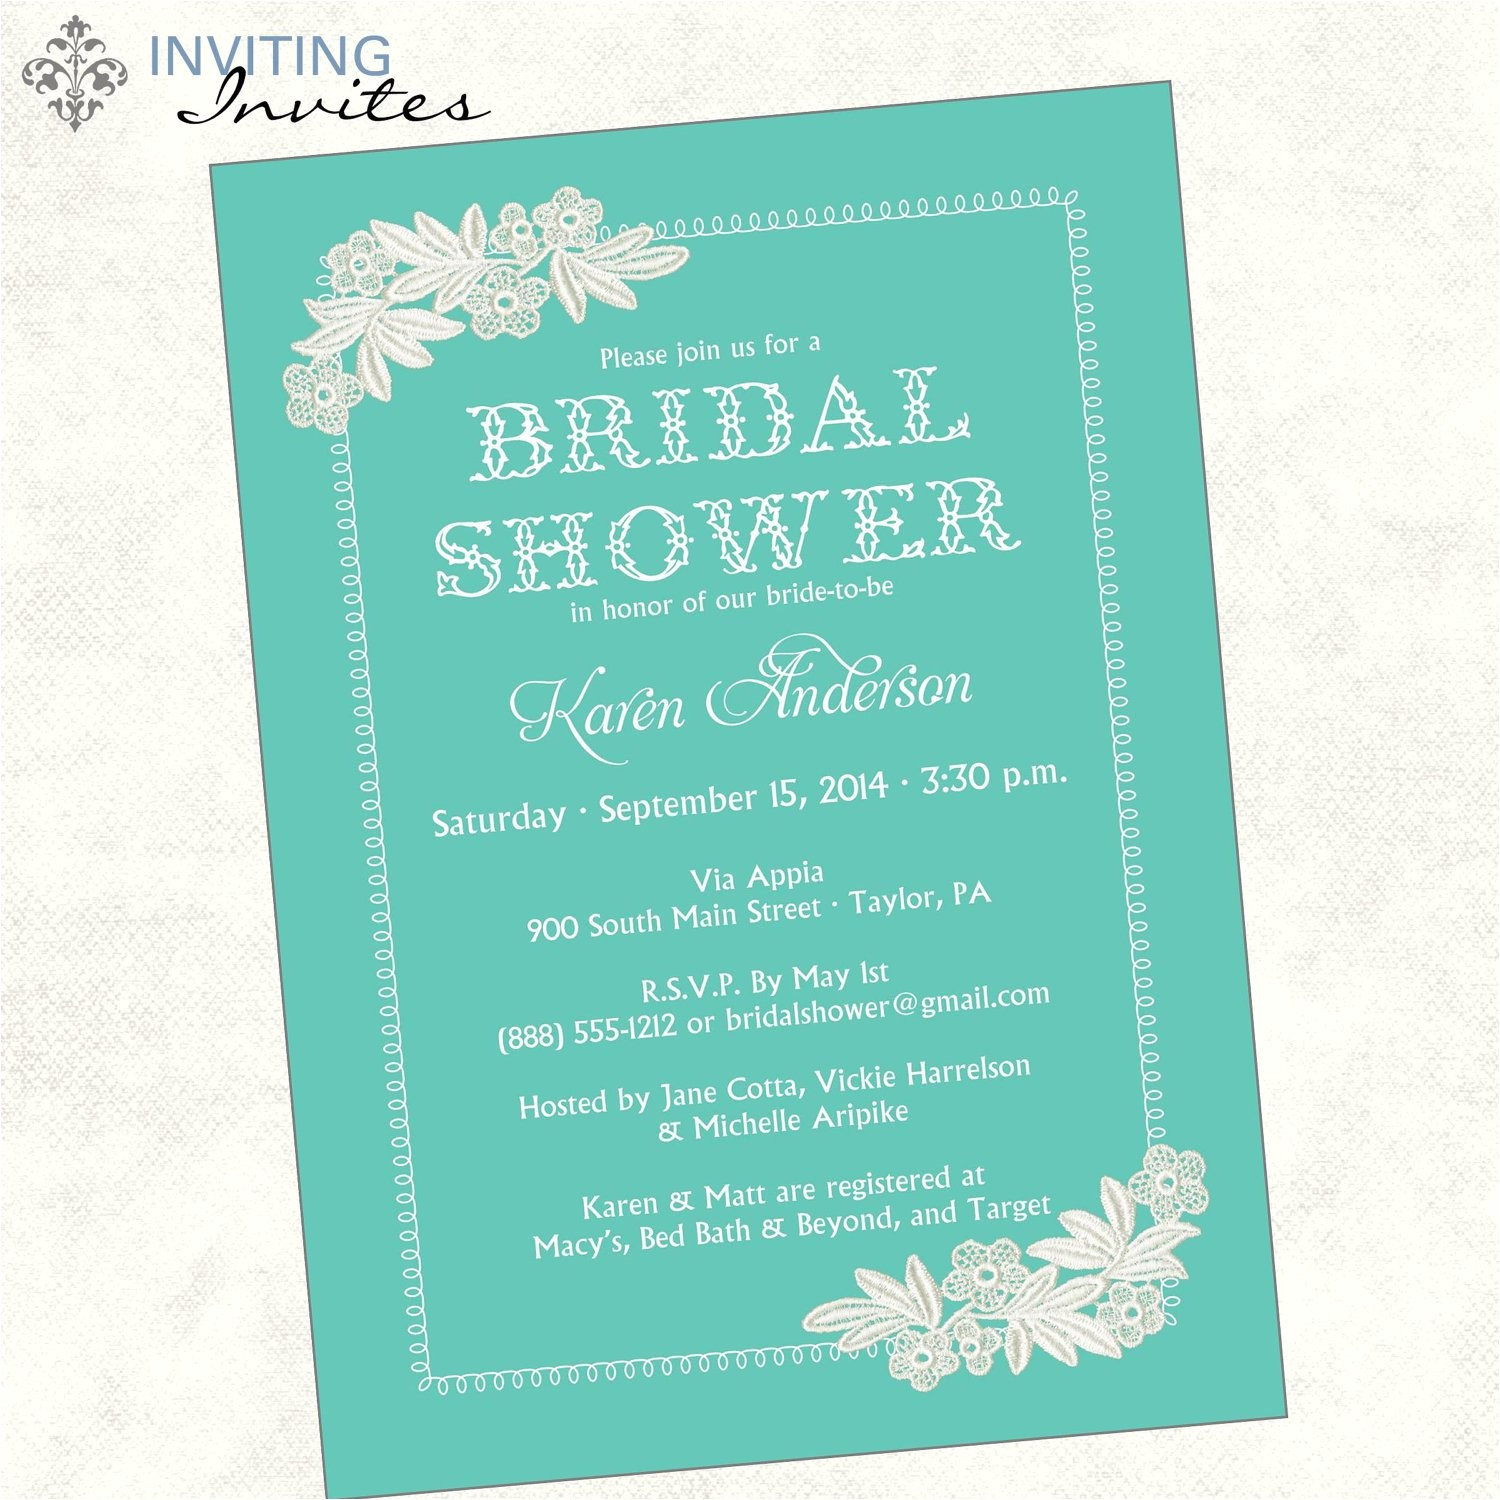 Bridal Shower Invitation Wording Monetary Gifts Bridal Shower Bridal Shower Invitation Wording Card